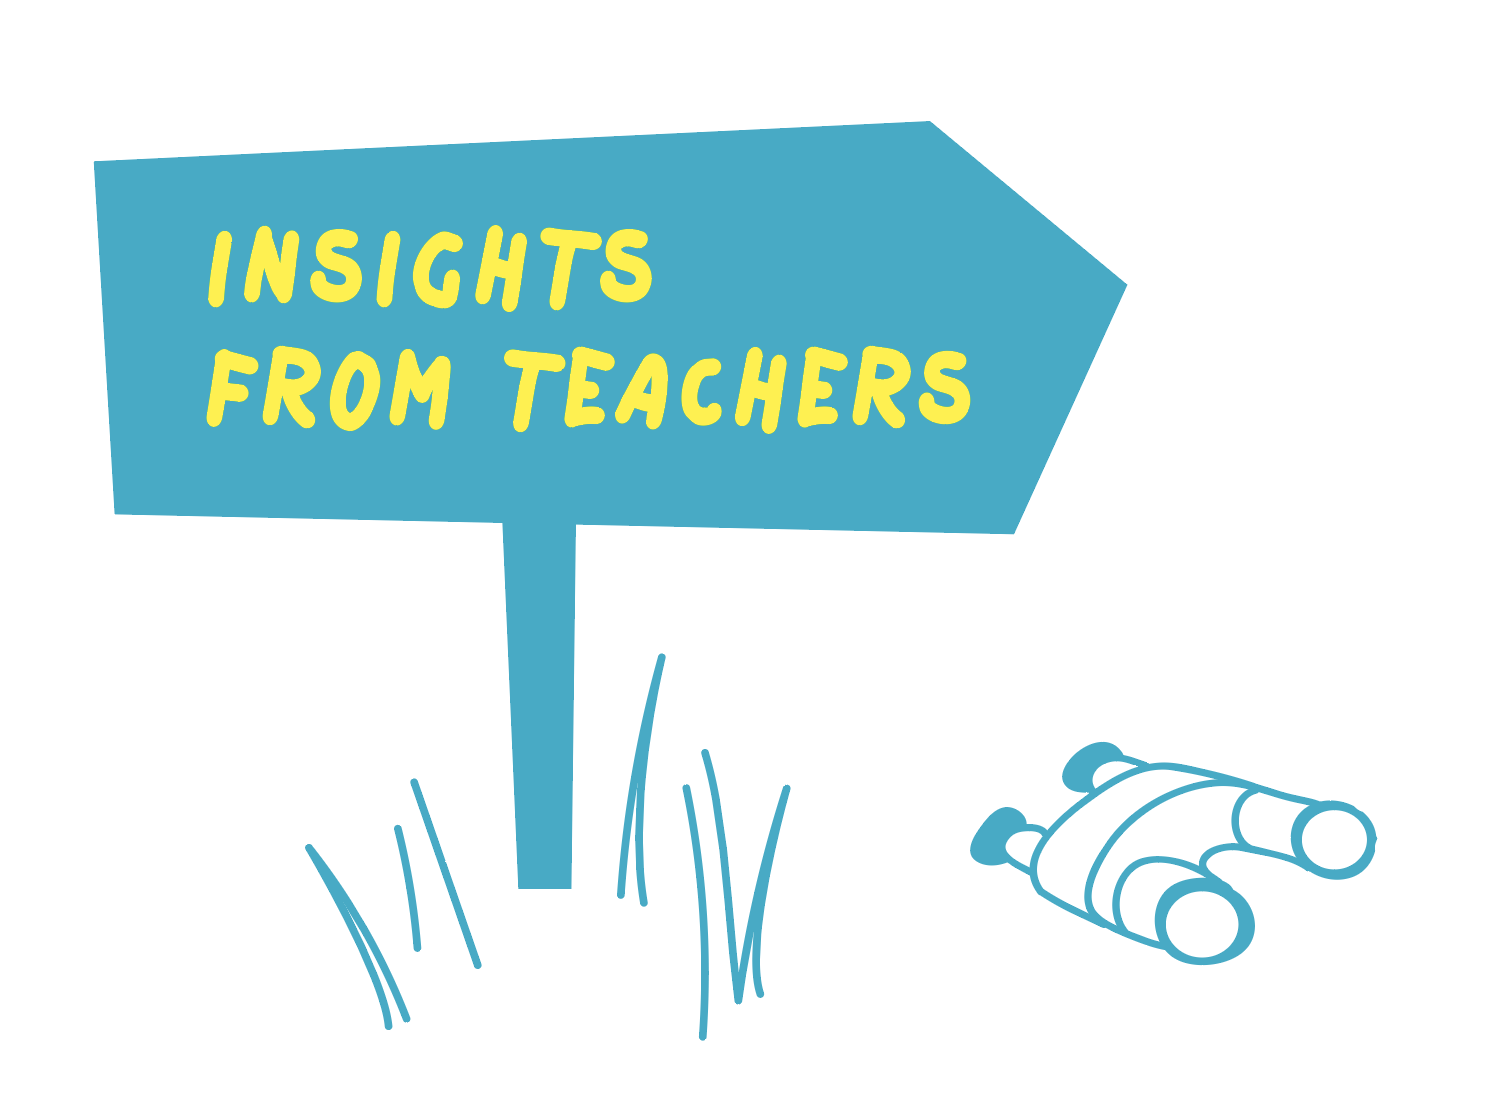 Insights from teachers